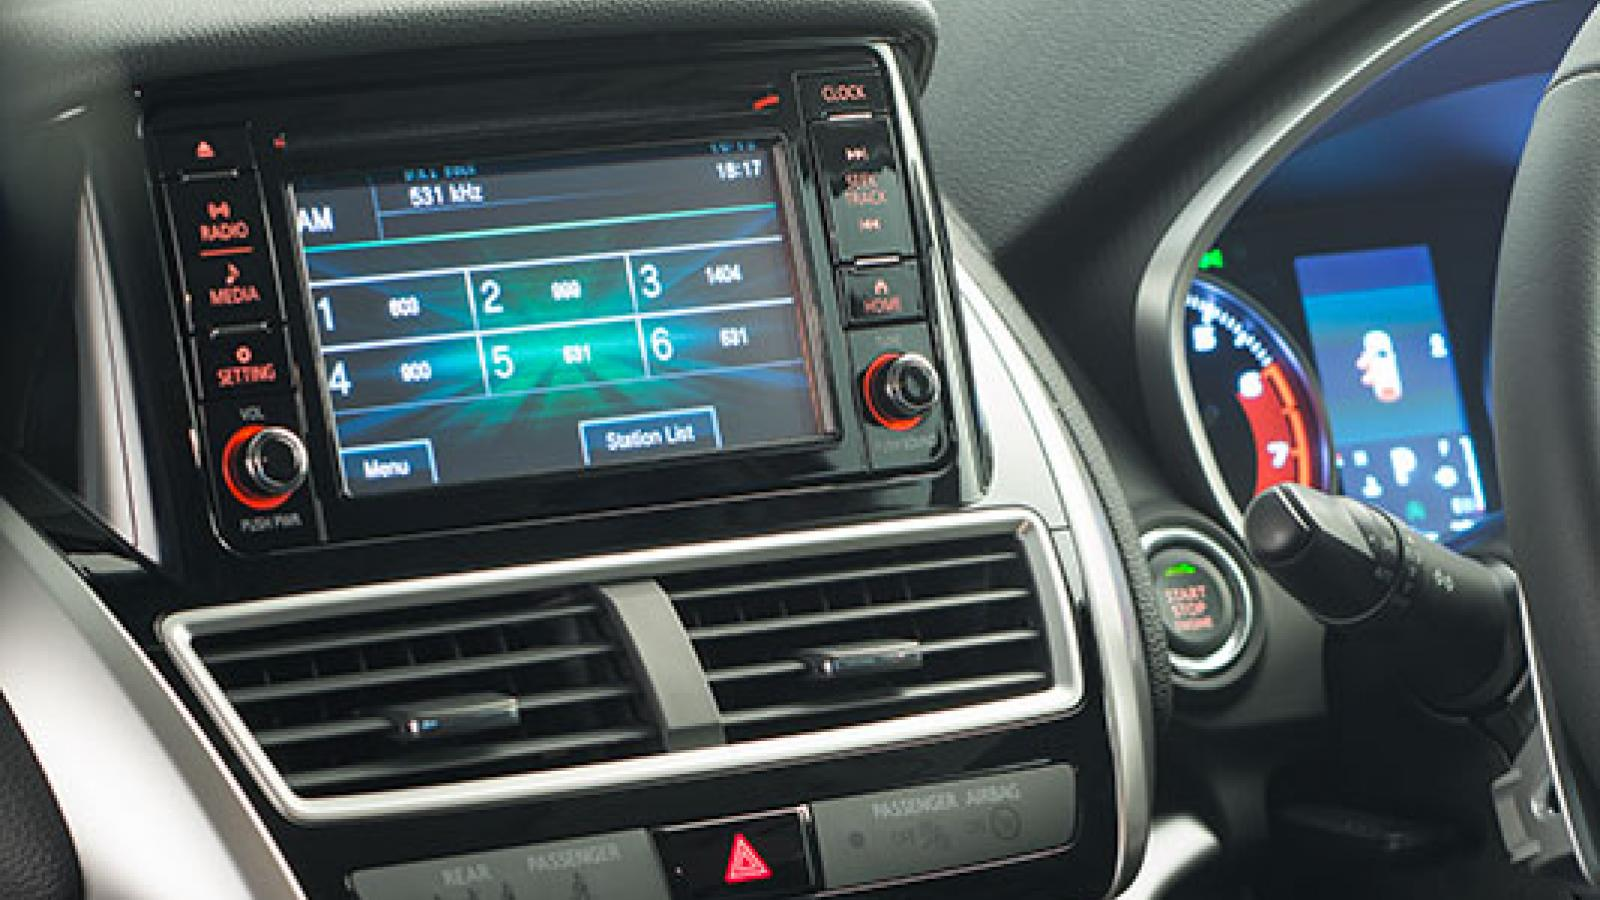 will i loose the car warranty if i replace the factory fitted car head unit?